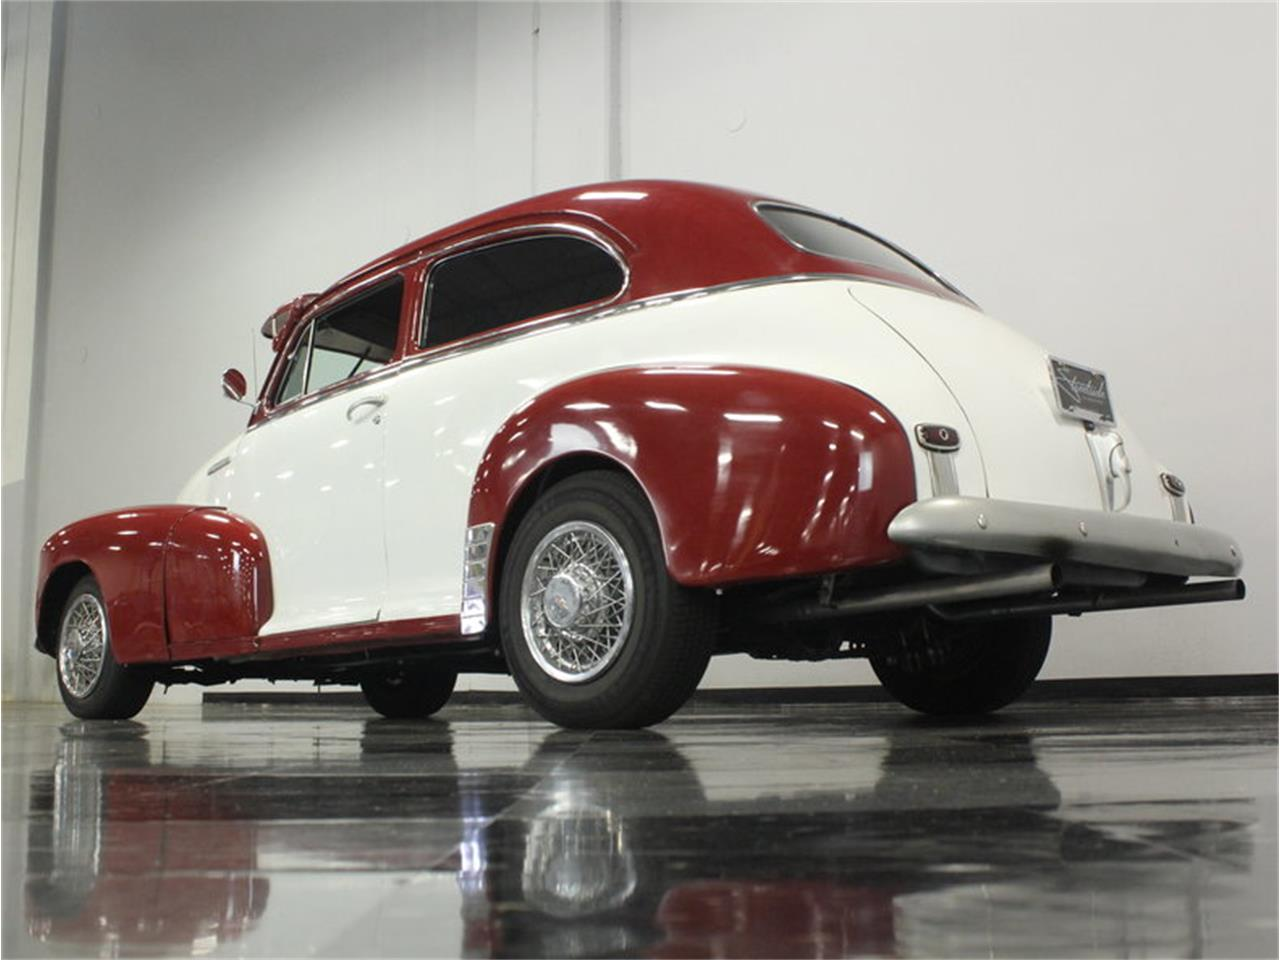 Large Picture of '47 Chevrolet Fleetmaster located in Texas - $16,995.00 Offered by Streetside Classics - Dallas / Fort Worth - IJNK